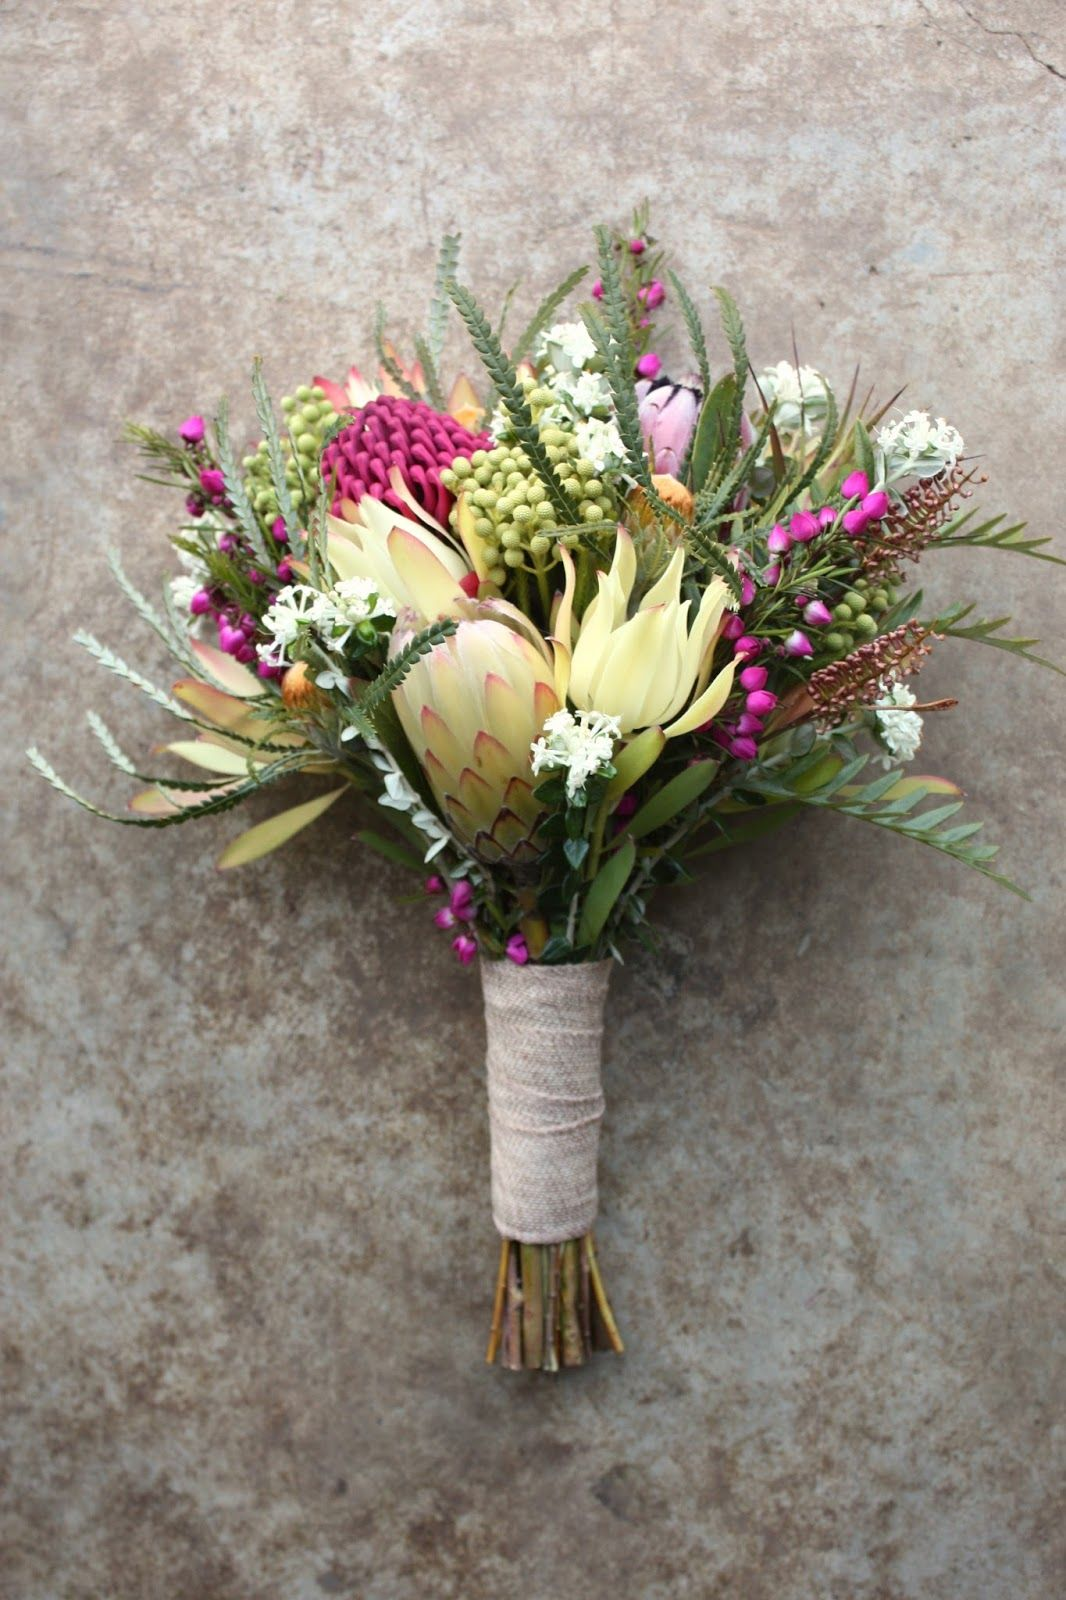 Spring is a fabulous time for native flowers and a fabulous time spring is a fabulous time for native flowers and a fabulous time for weddings i get to put the two together when im doing spr izmirmasajfo